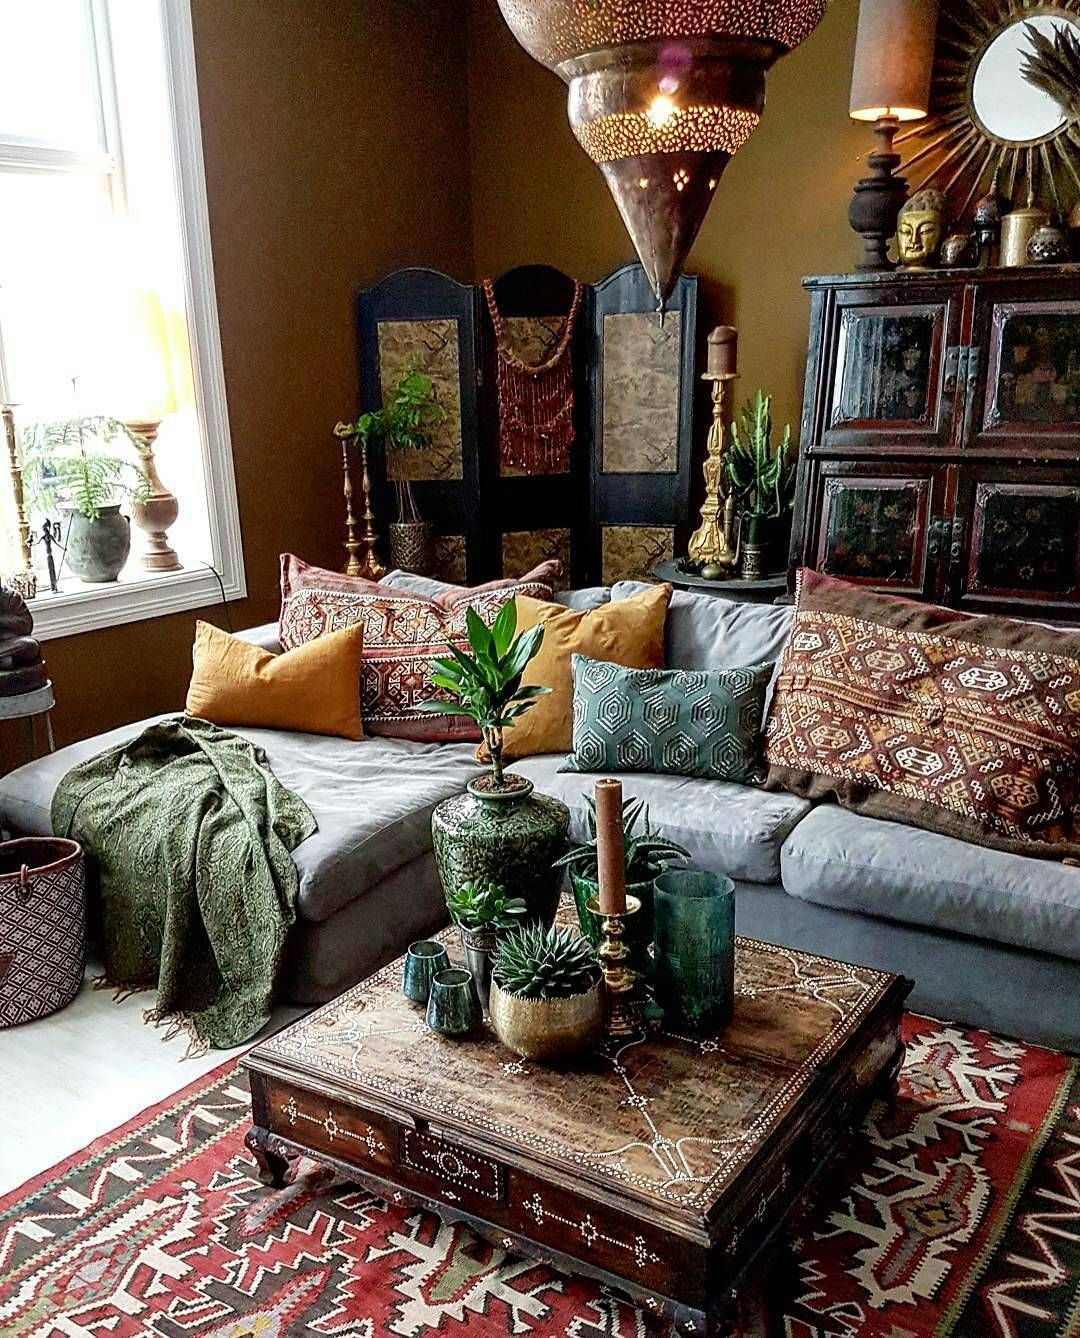 Worldwiide Decor: Moroccan Style Basics